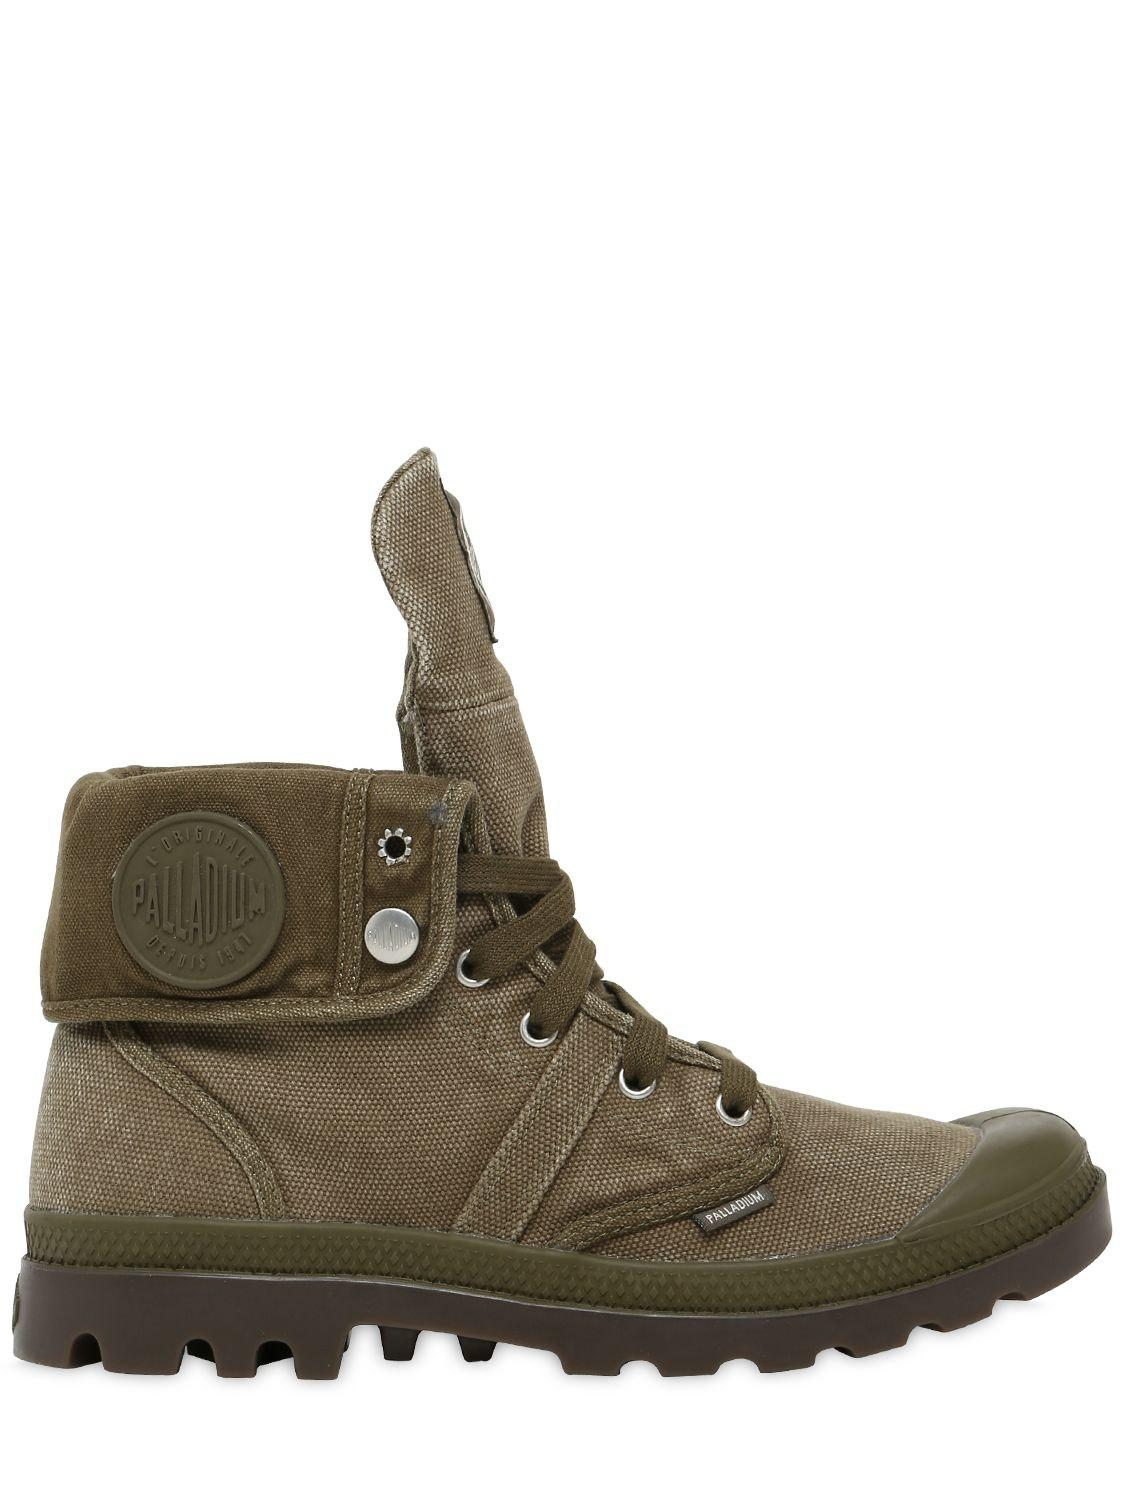 Palladium - Green Pallabrouse Baggy Washed Canvas Boots for Men - Lyst.  View fullscreen f1d5d183a7